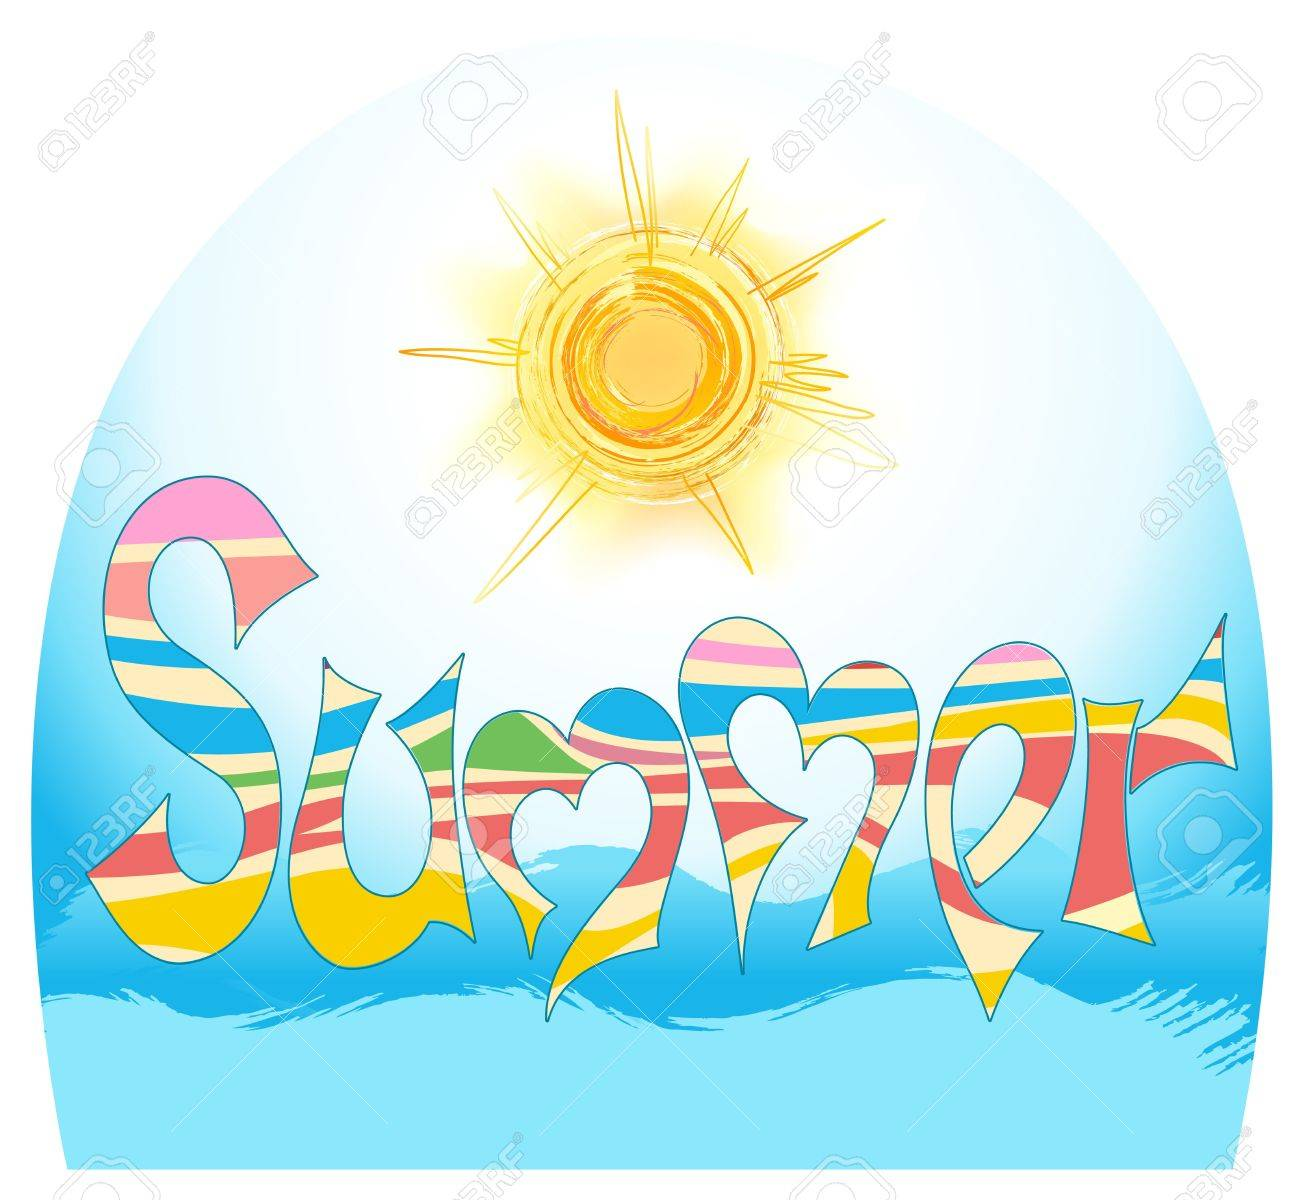 word summer in style graphites, with stylized sun and by sea - 12789037